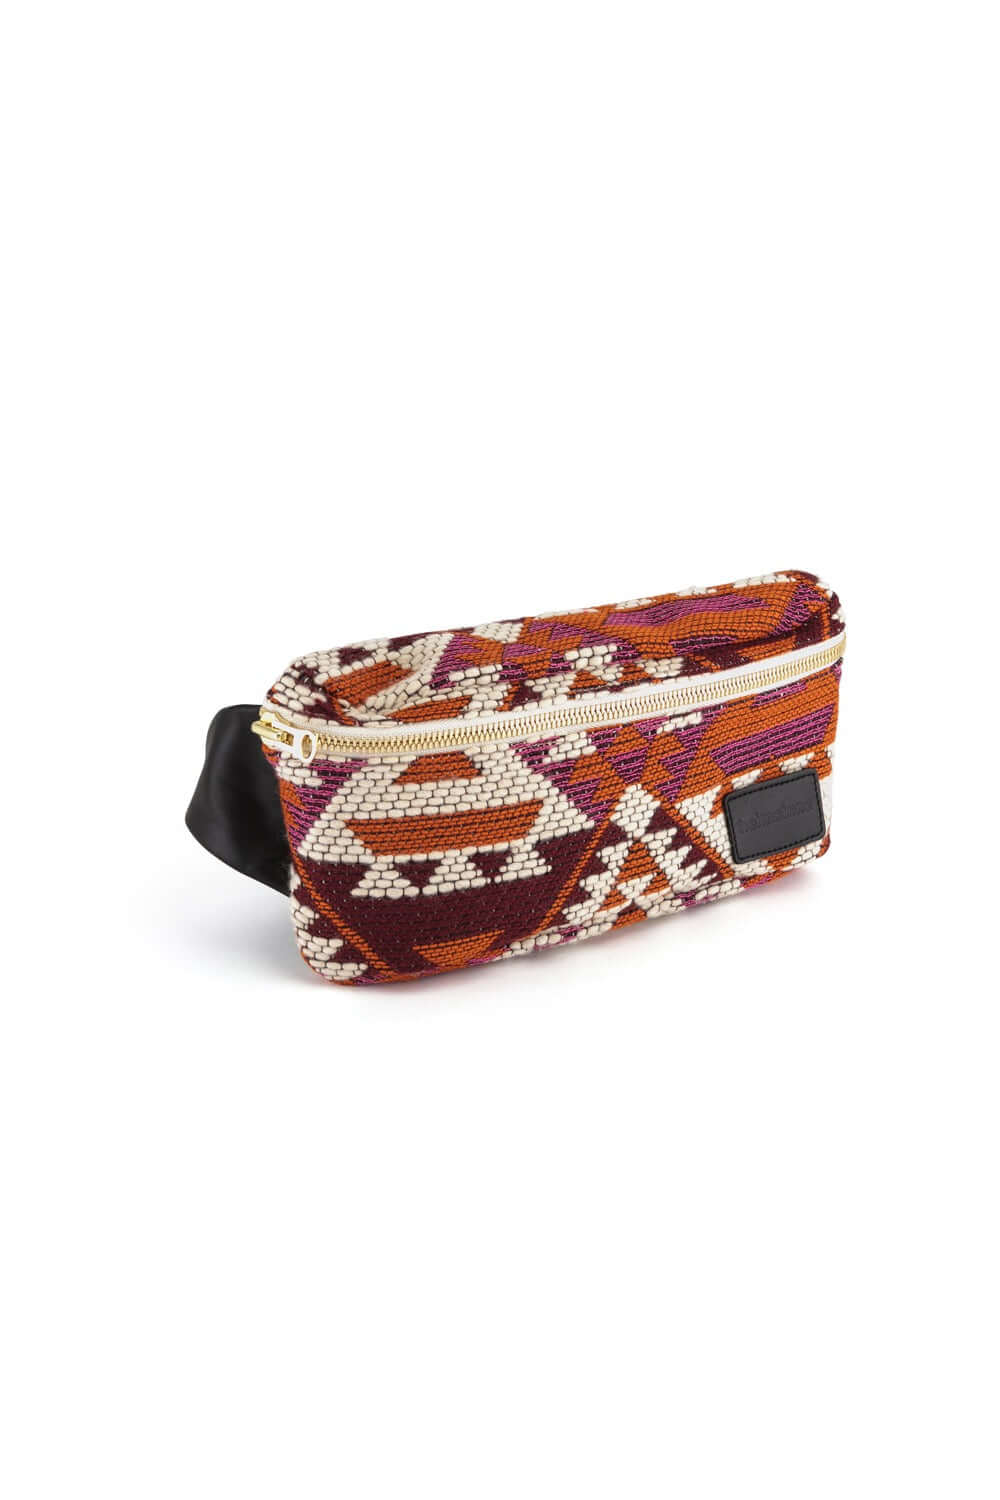 Fanny pack in kilim fabric